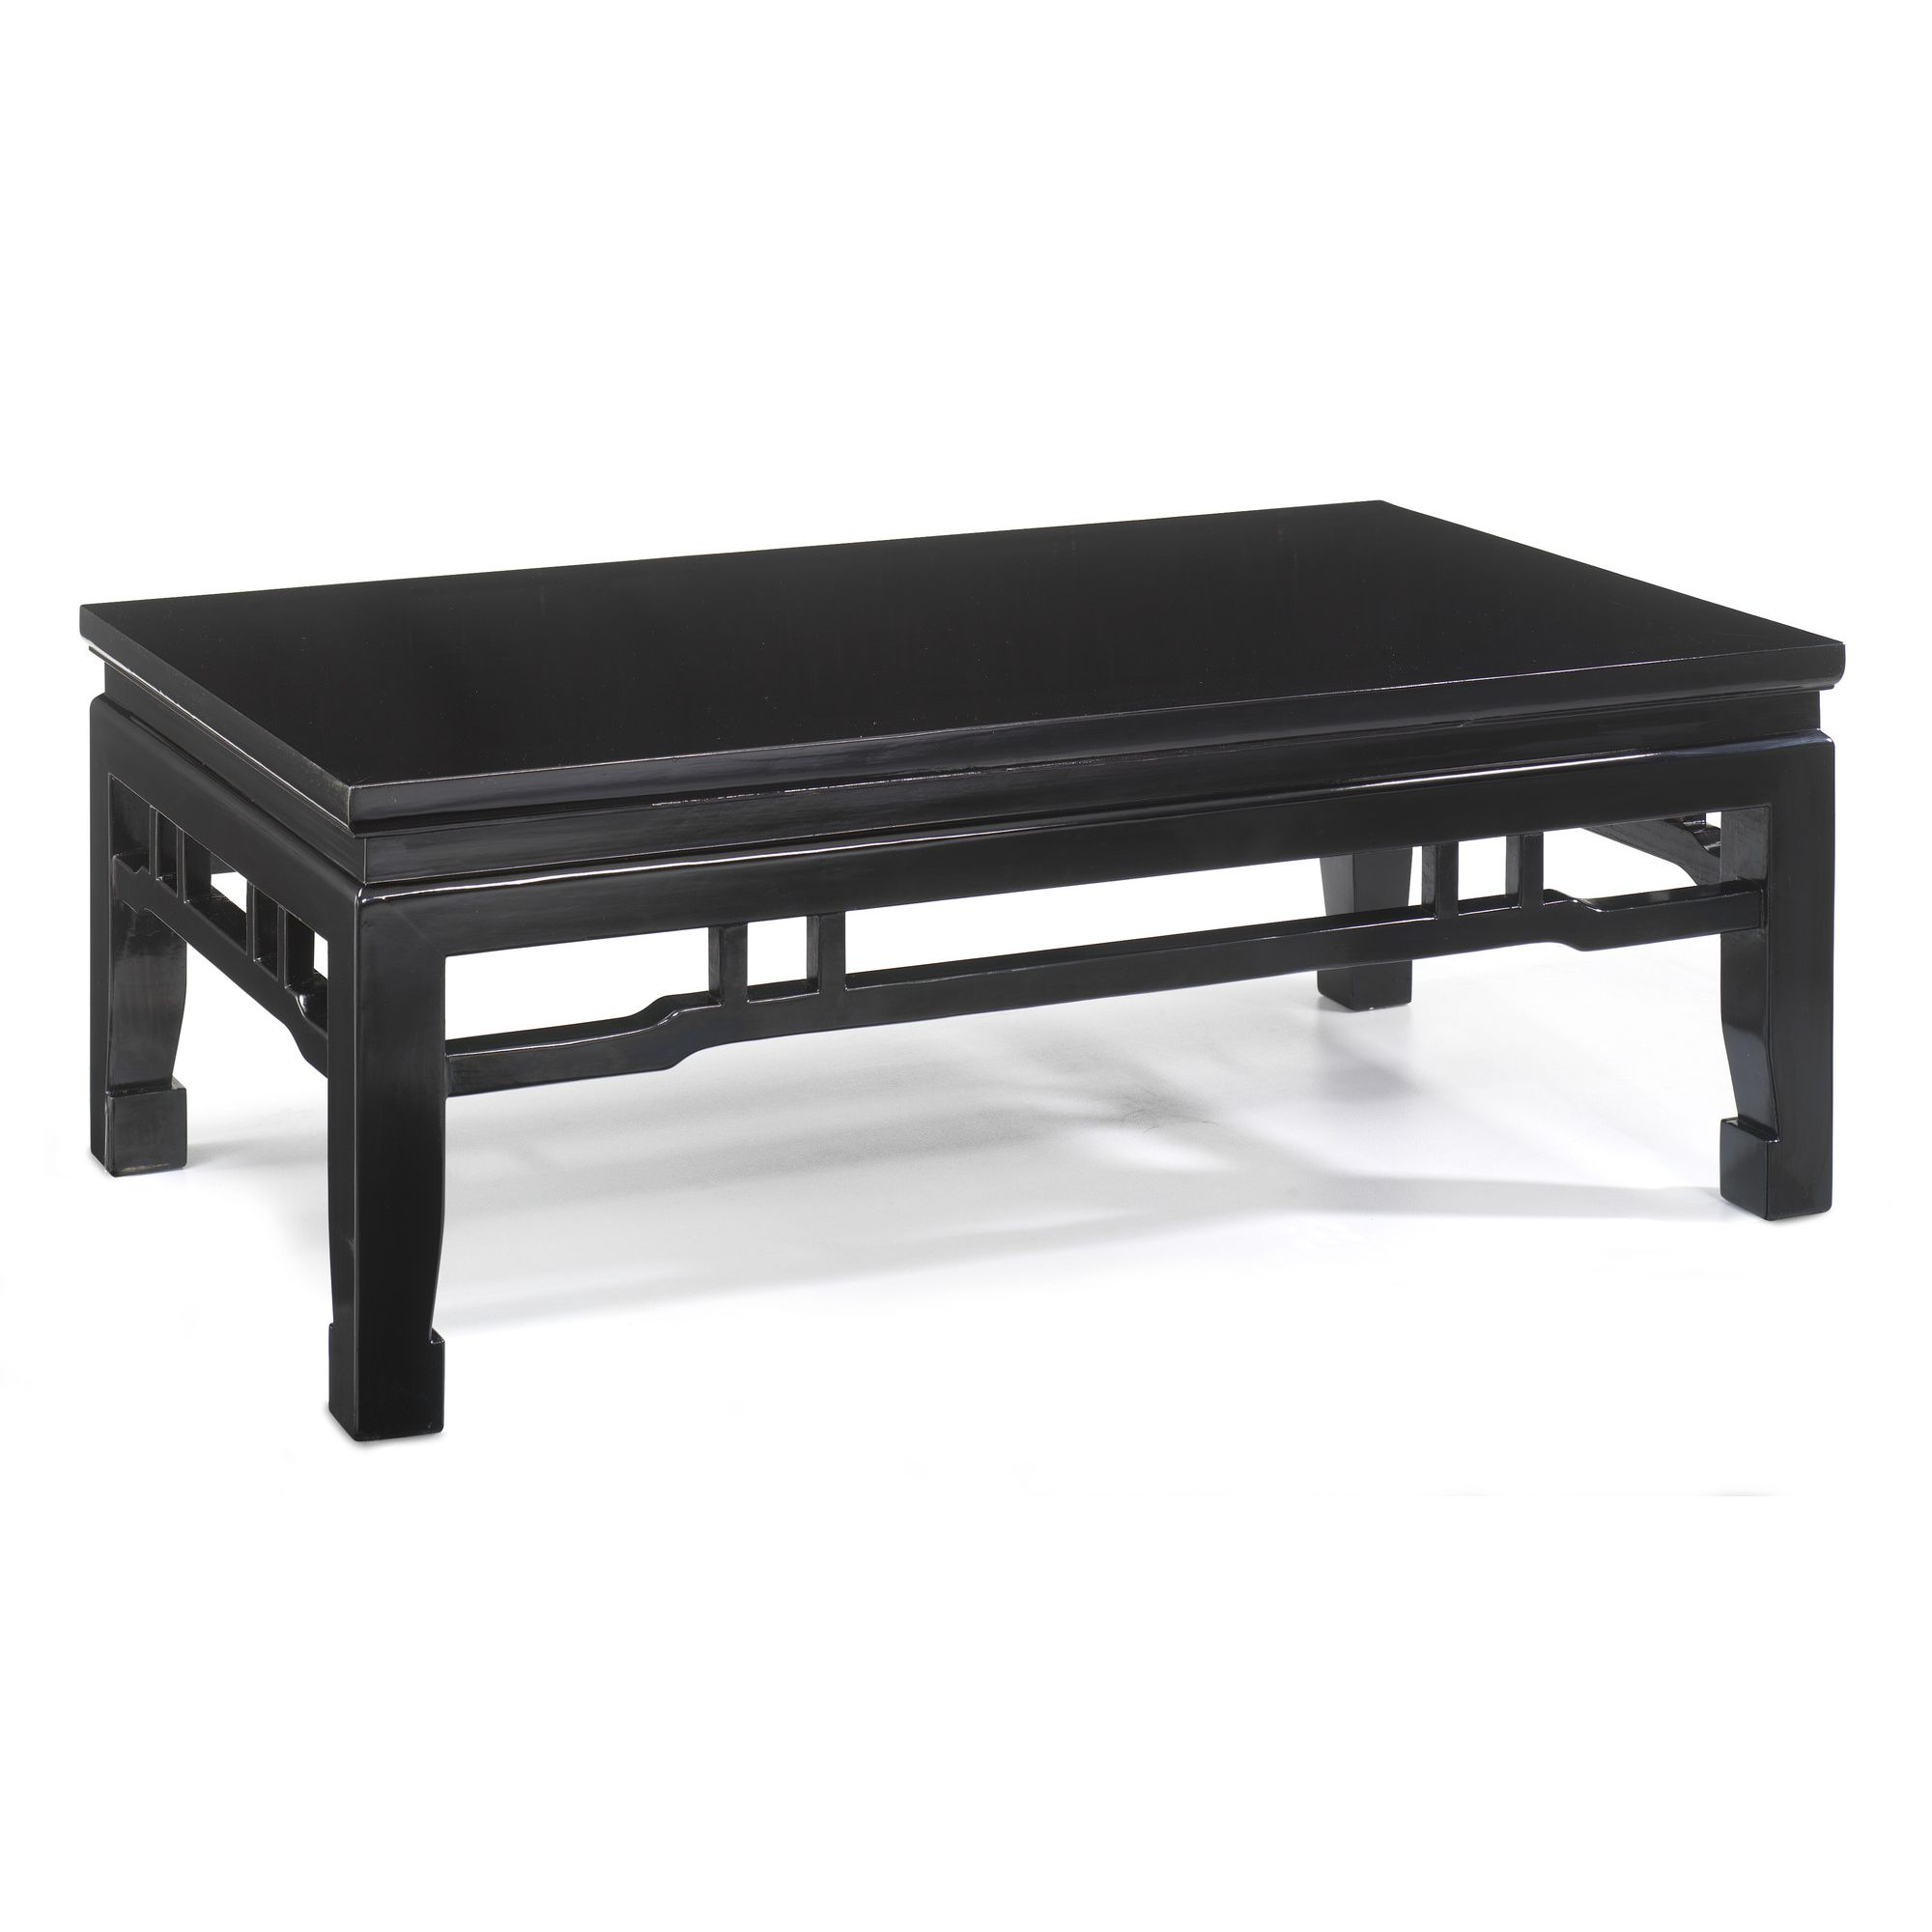 Shimu Chinese Classical Kang Style Coffee Table - Black Lacquer at Tesco Direct